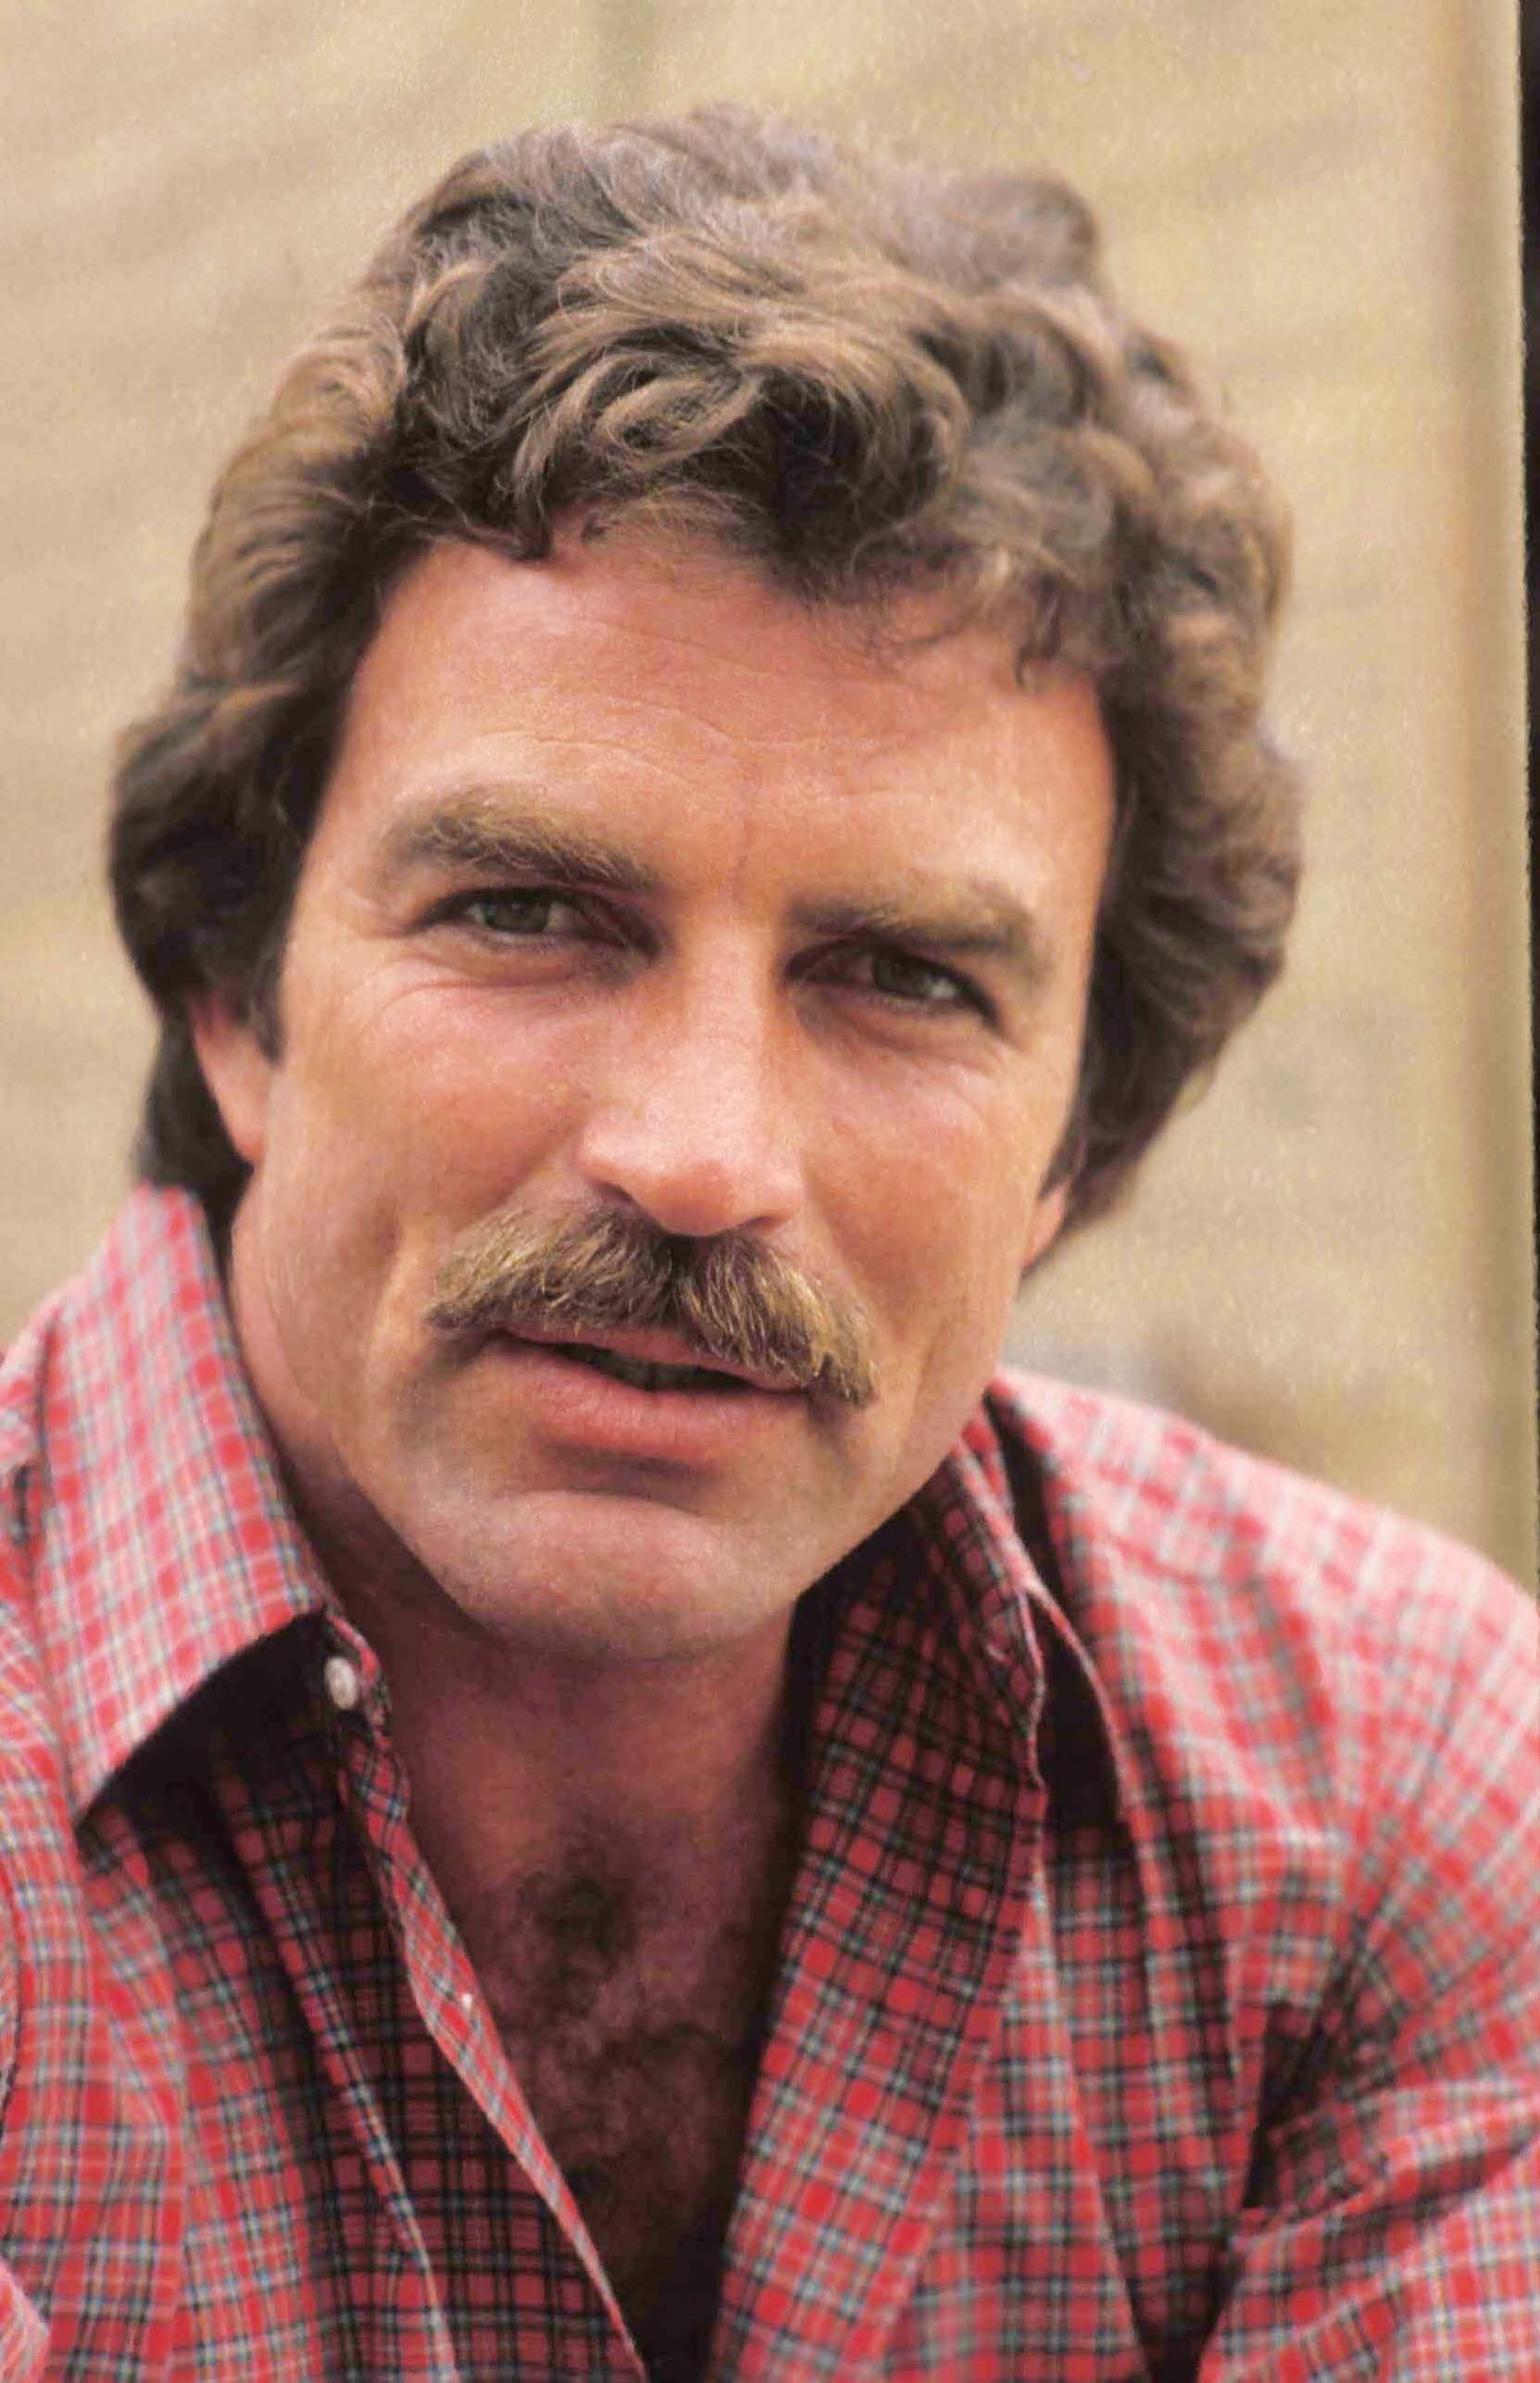 Tom Selleck Male Actor Eye Candy Moustache Celeb Portrait